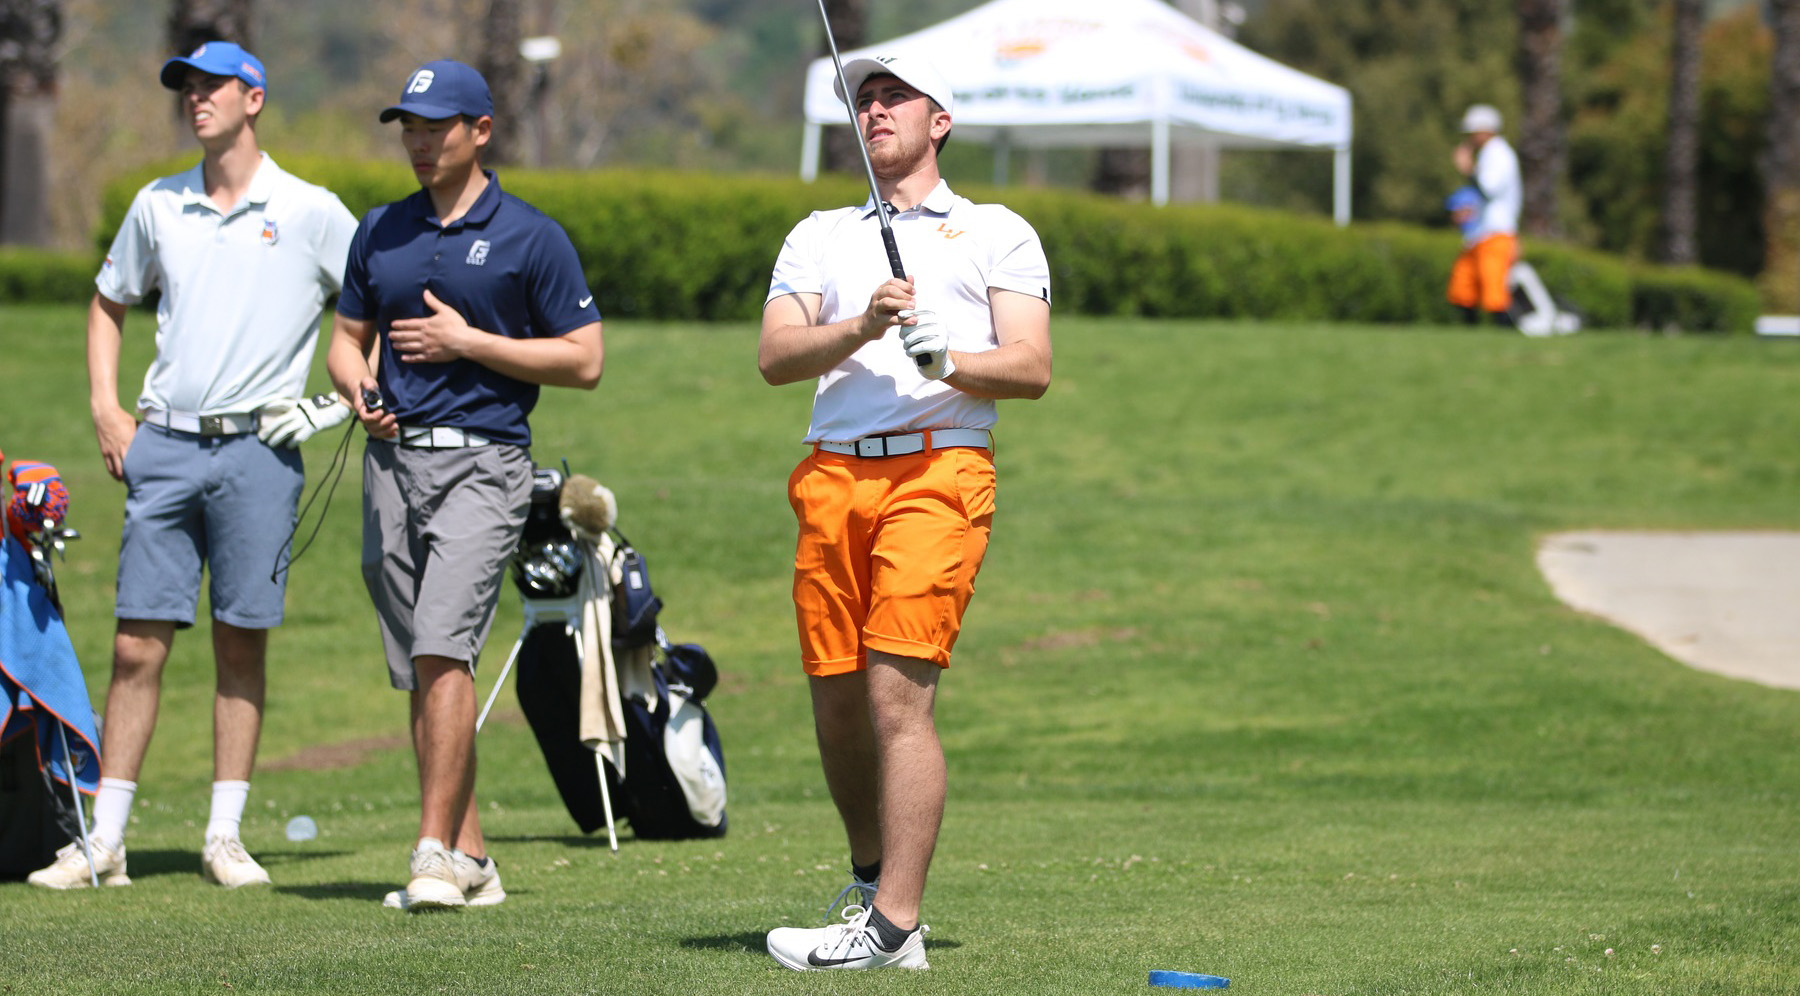 No. 12 Men's Golf takes 2nd, Hussein takes 3rd at SCIAC No. 2